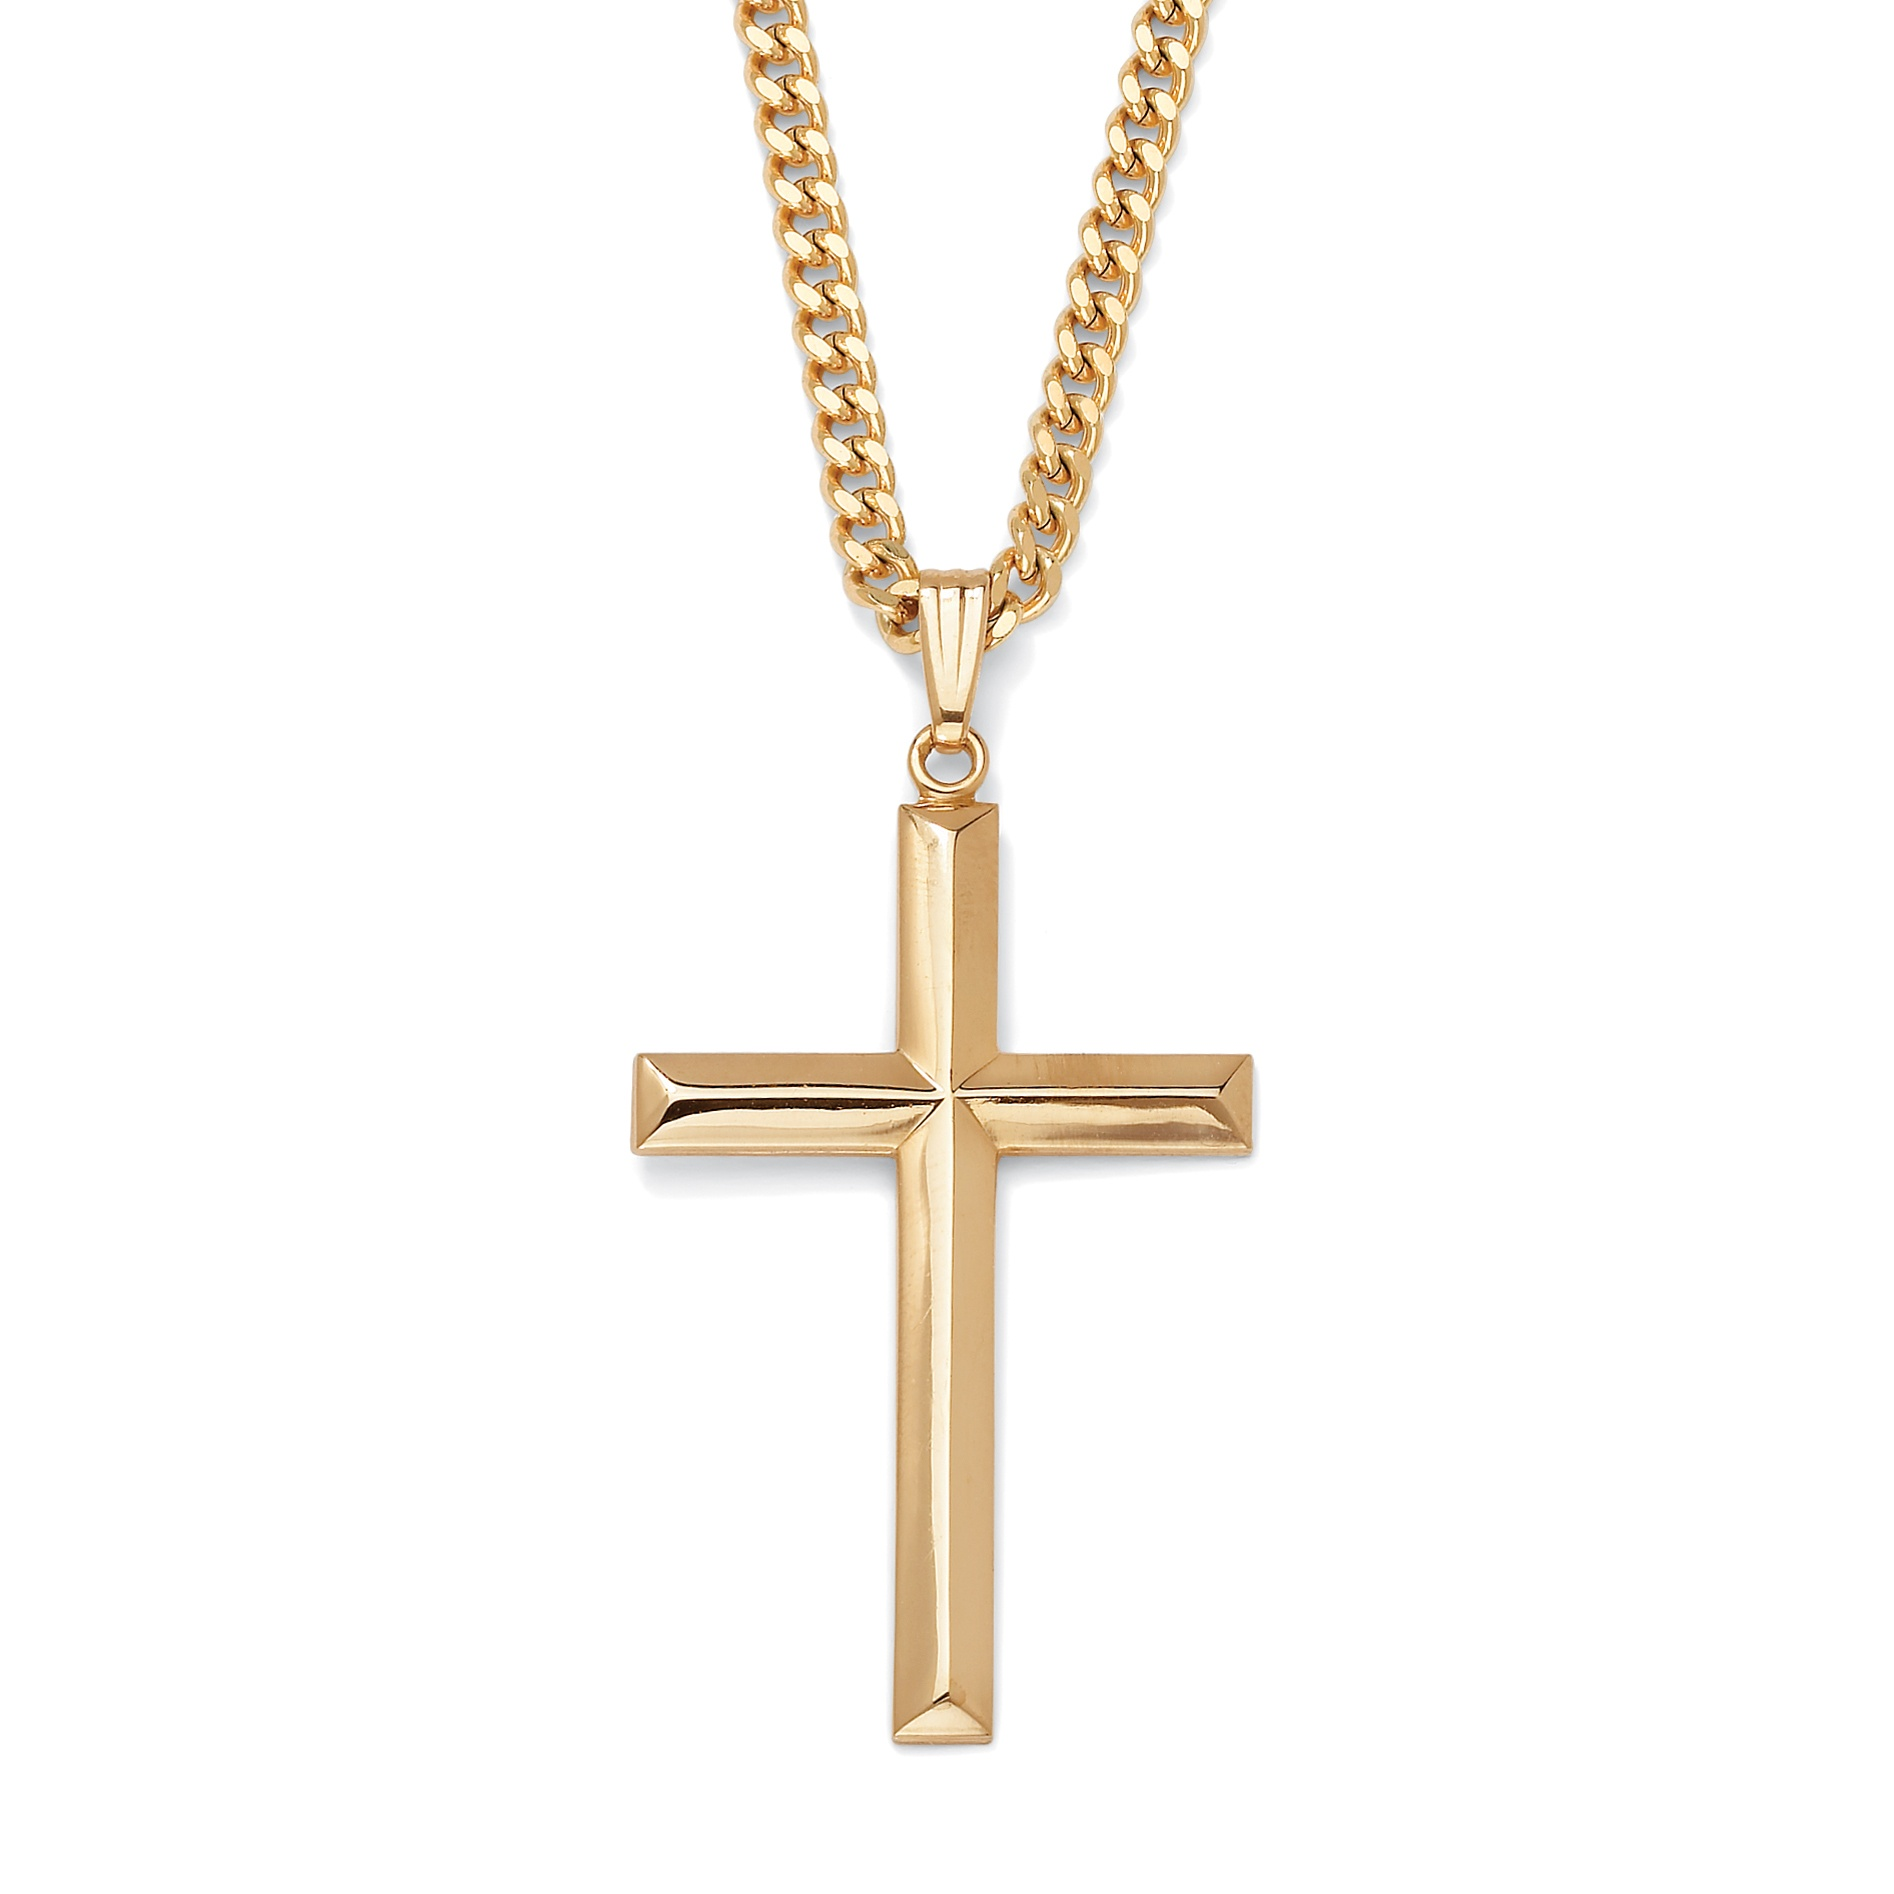 Cross pendant gold filled and gold ion plated chain 24 at palmbeach cross pendant gold filled and gold ion plated chain 24 at palmbeach jewelry mozeypictures Image collections